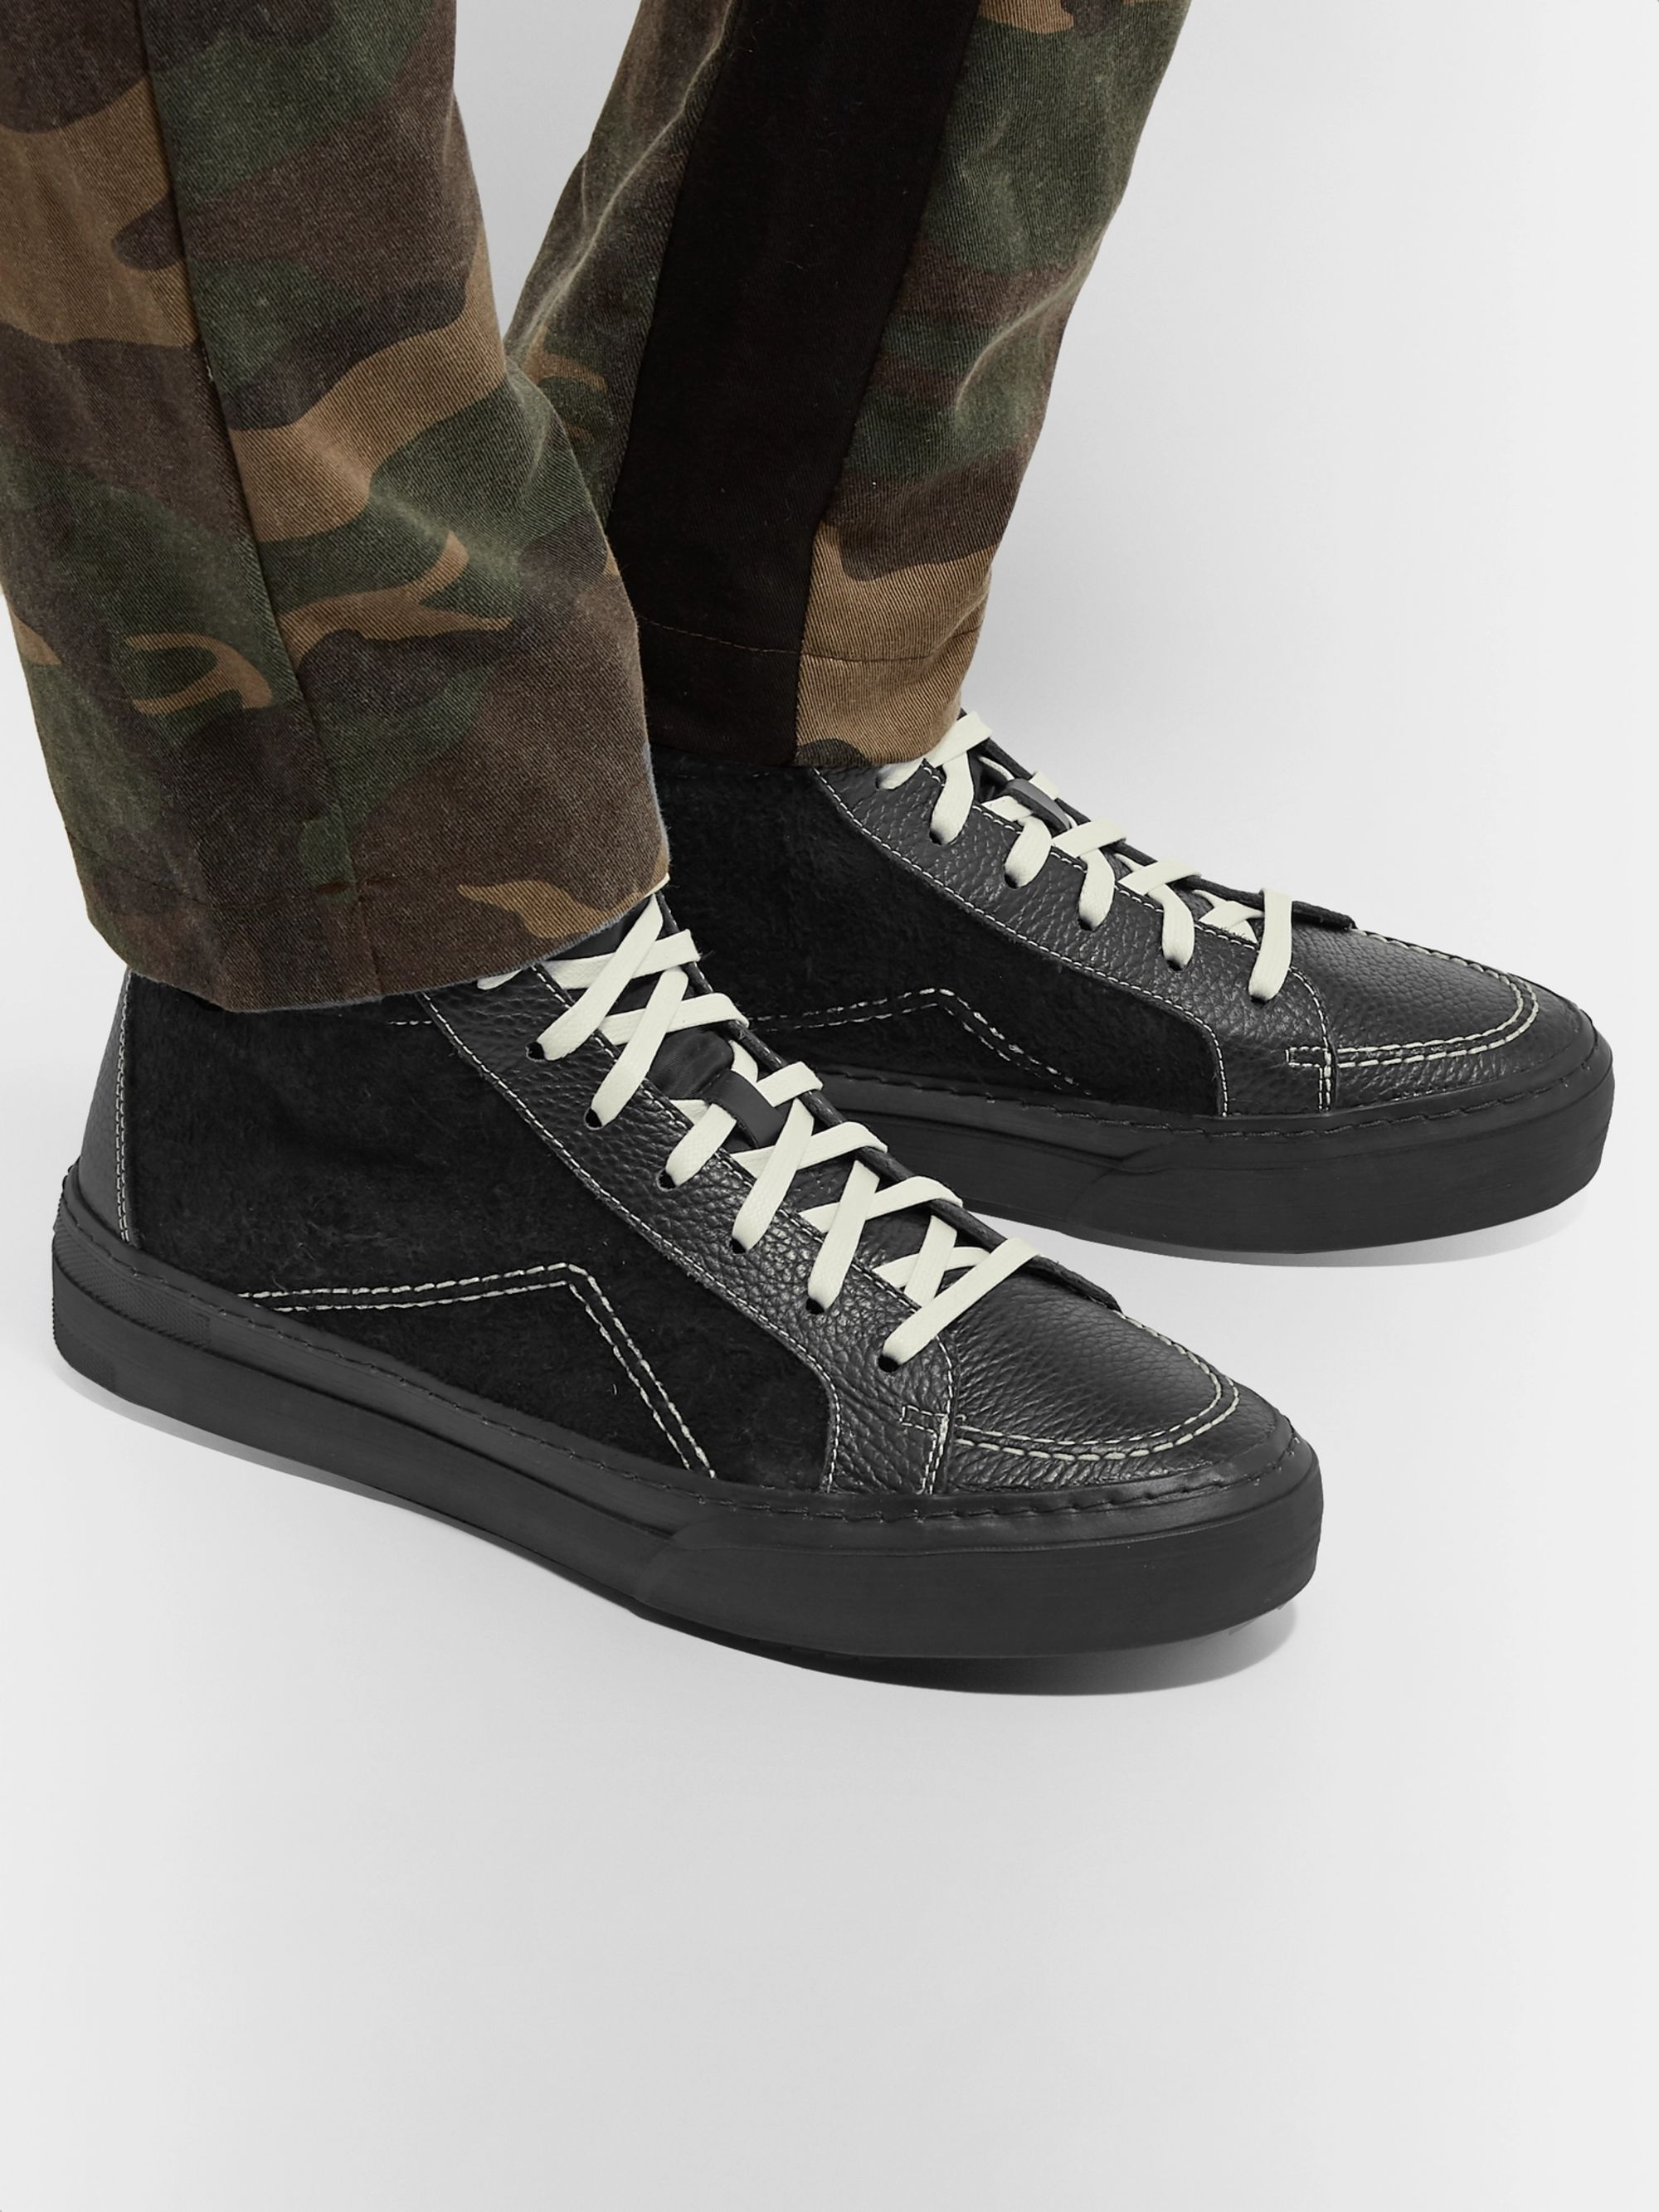 Rhude V1 Leather-Trimmed Nylon High-Top Sneakers